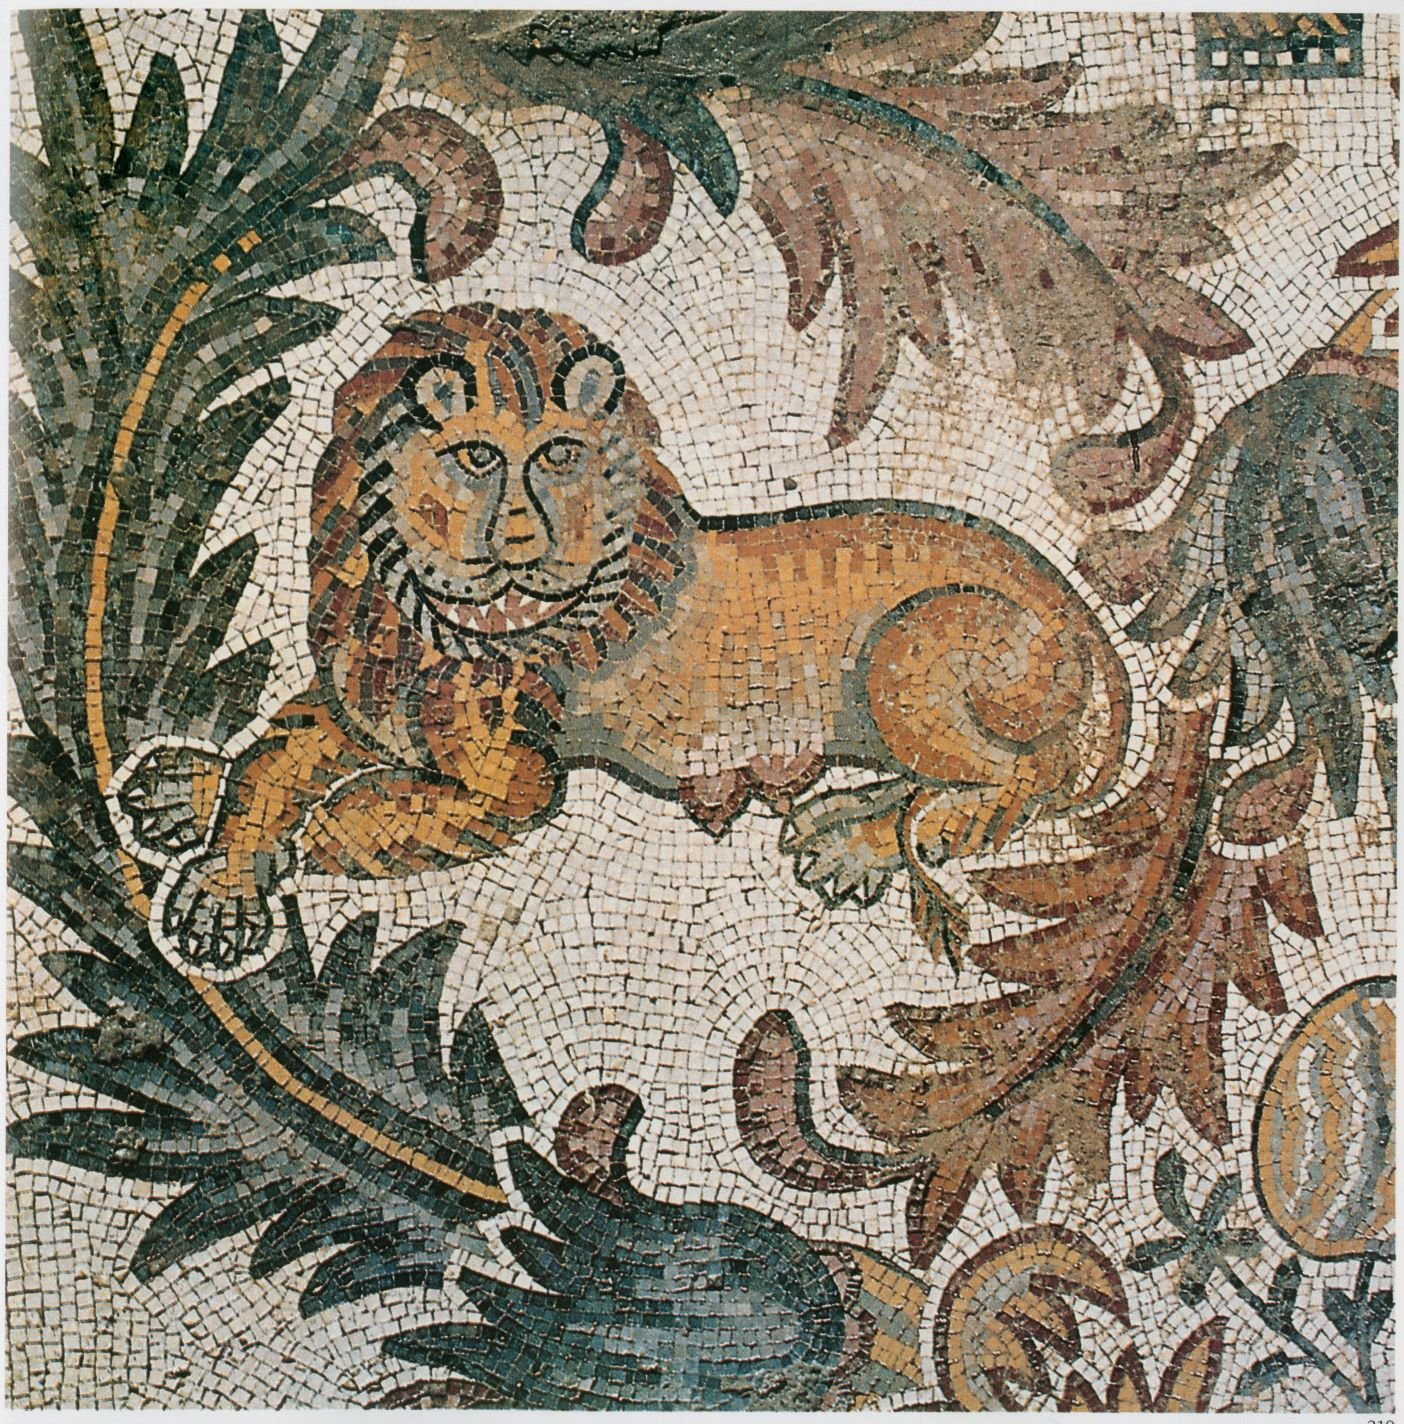 Lion, detail of mosaic, Mount Nebo ( Mosaics of Jordan , fig. 219 on p. 169). Chapel of the Priest John at Khirbat-al-Mukhayyat, Jordan 565 CE. Courtesy of the Franciscan Custody of the Holy Land, Mount Nebo, and the American Center of Oriental Research, Amman. Permission obtained by author.